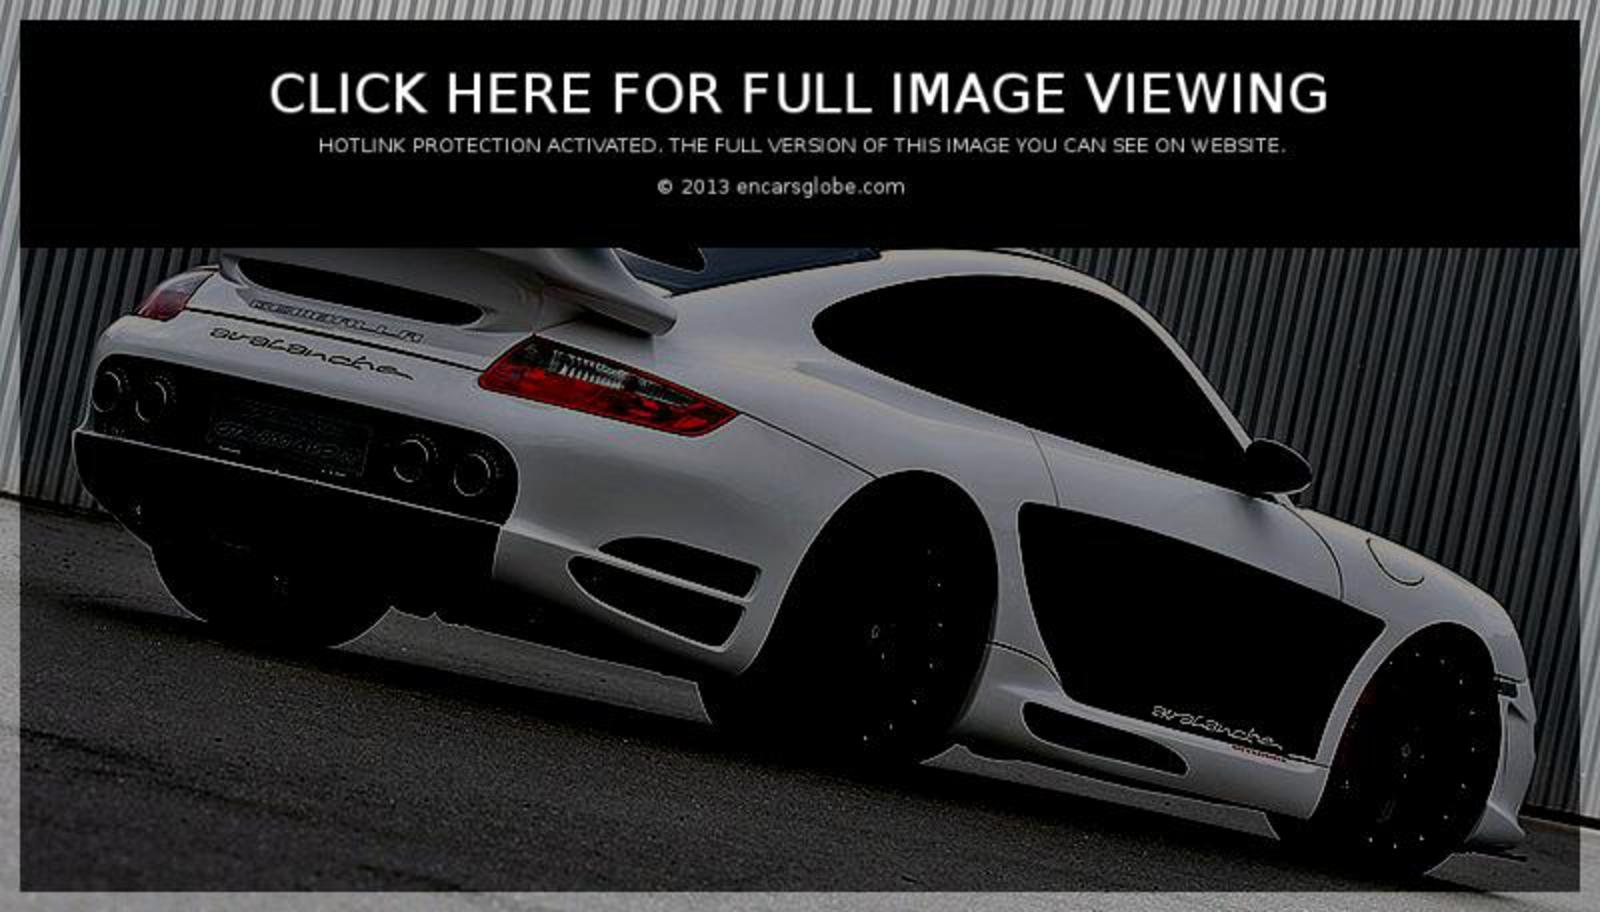 Porsche Panamera 4S Photo Gallery: Photo #03 out of 12, Image Size ...